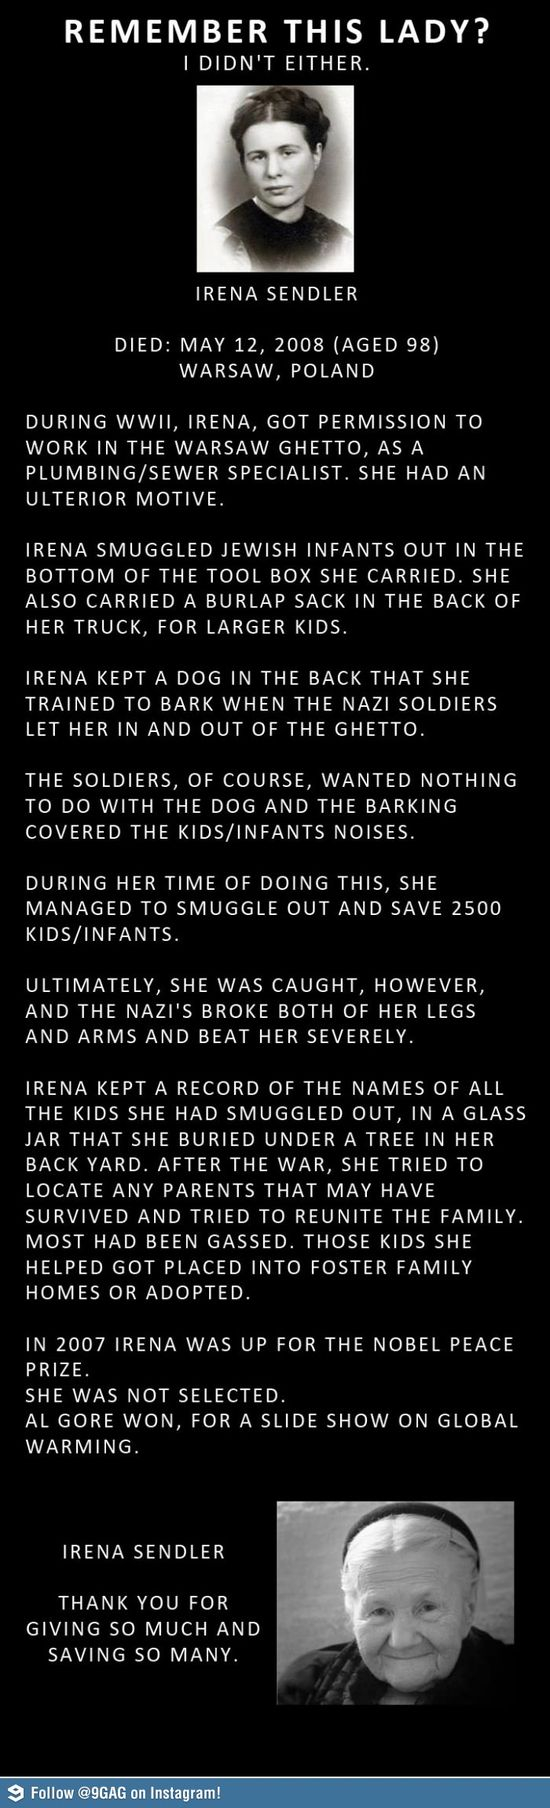 Women like this are truly inspirational! A real hero don't you think?